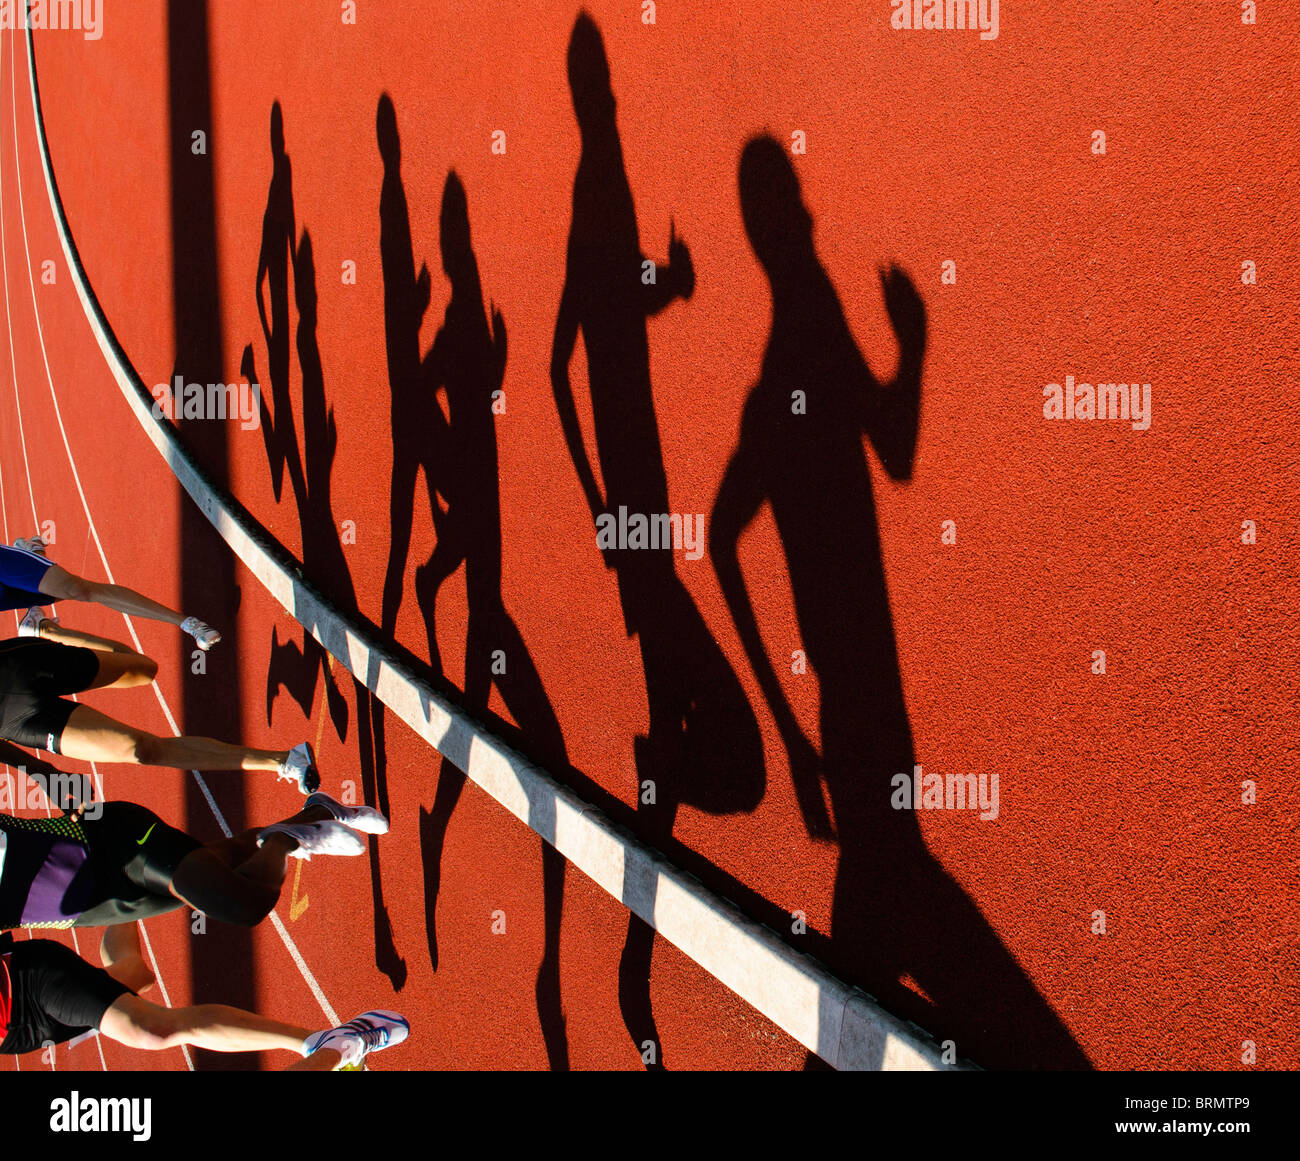 shadows of runners during 800m race during outdoor track and field competition Stock Photo